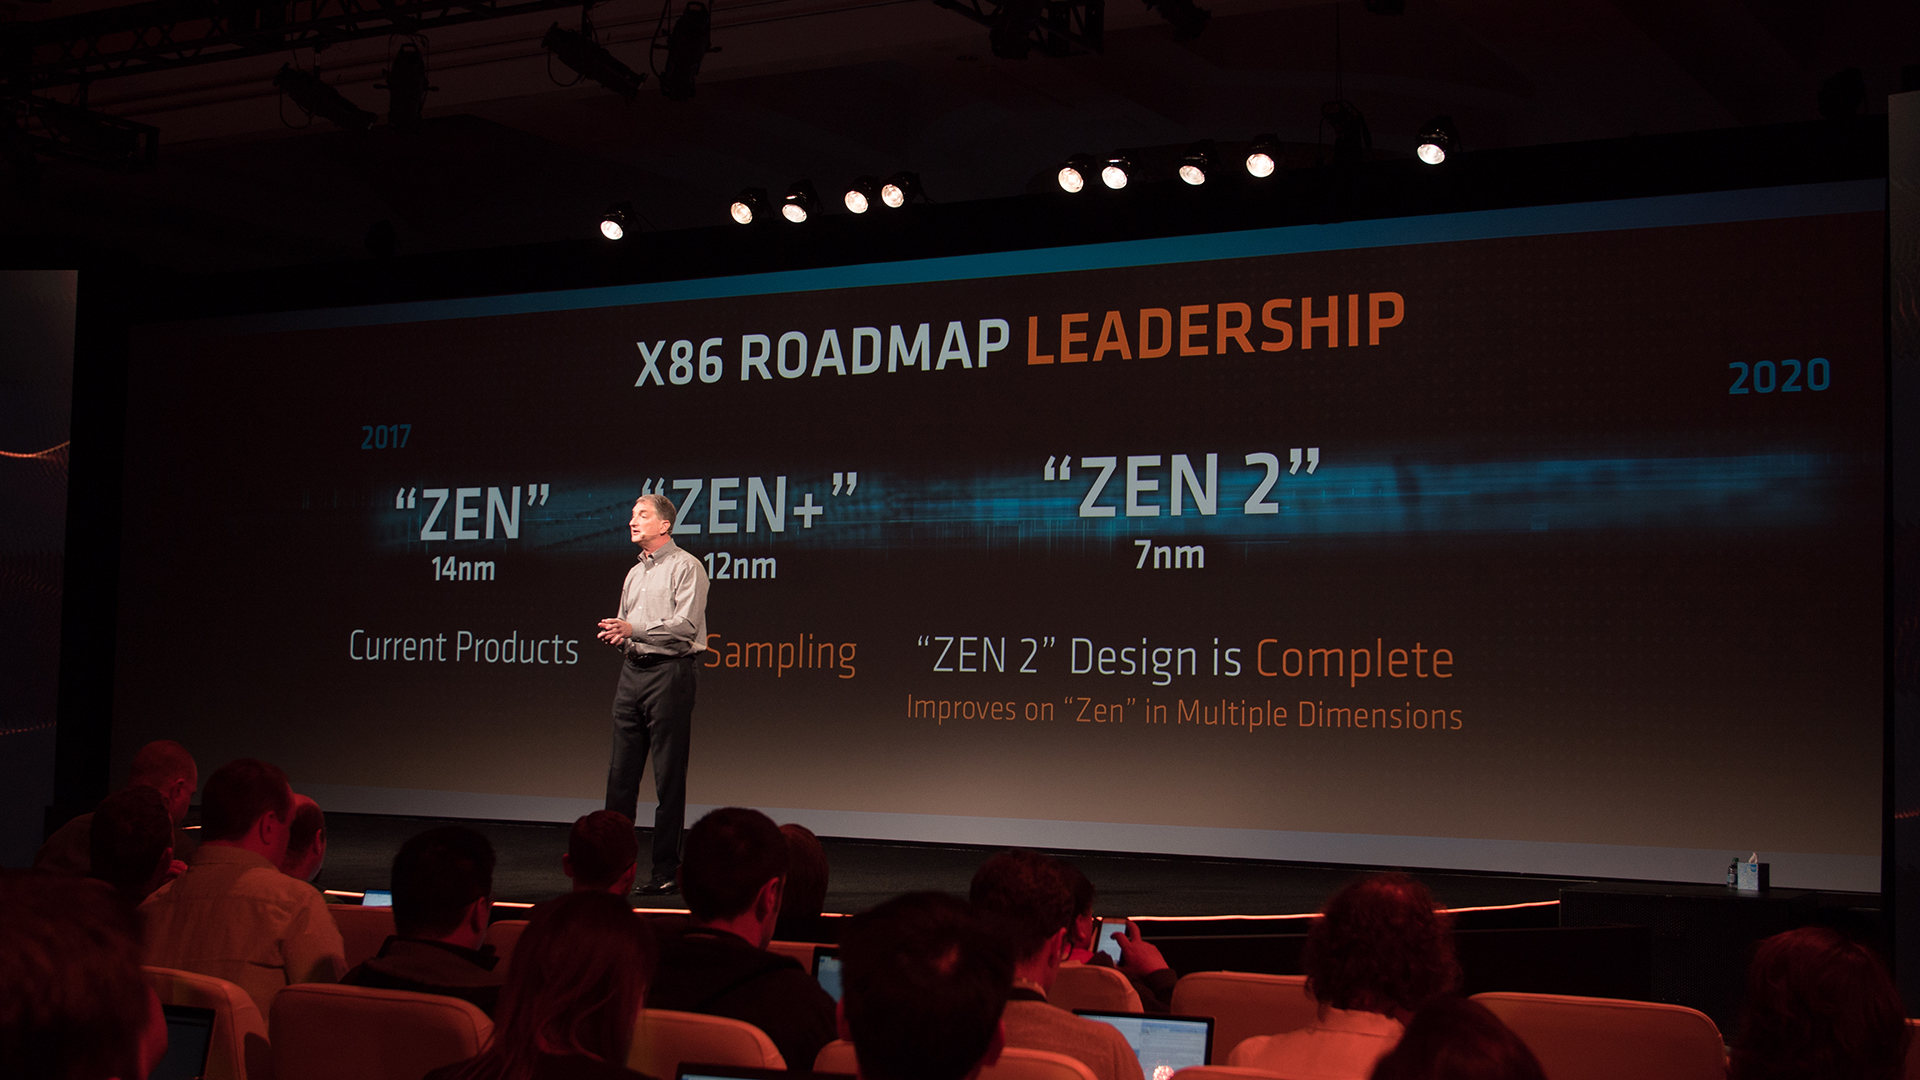 AMD Ryzen 2nd Generation release date, news and features: everything